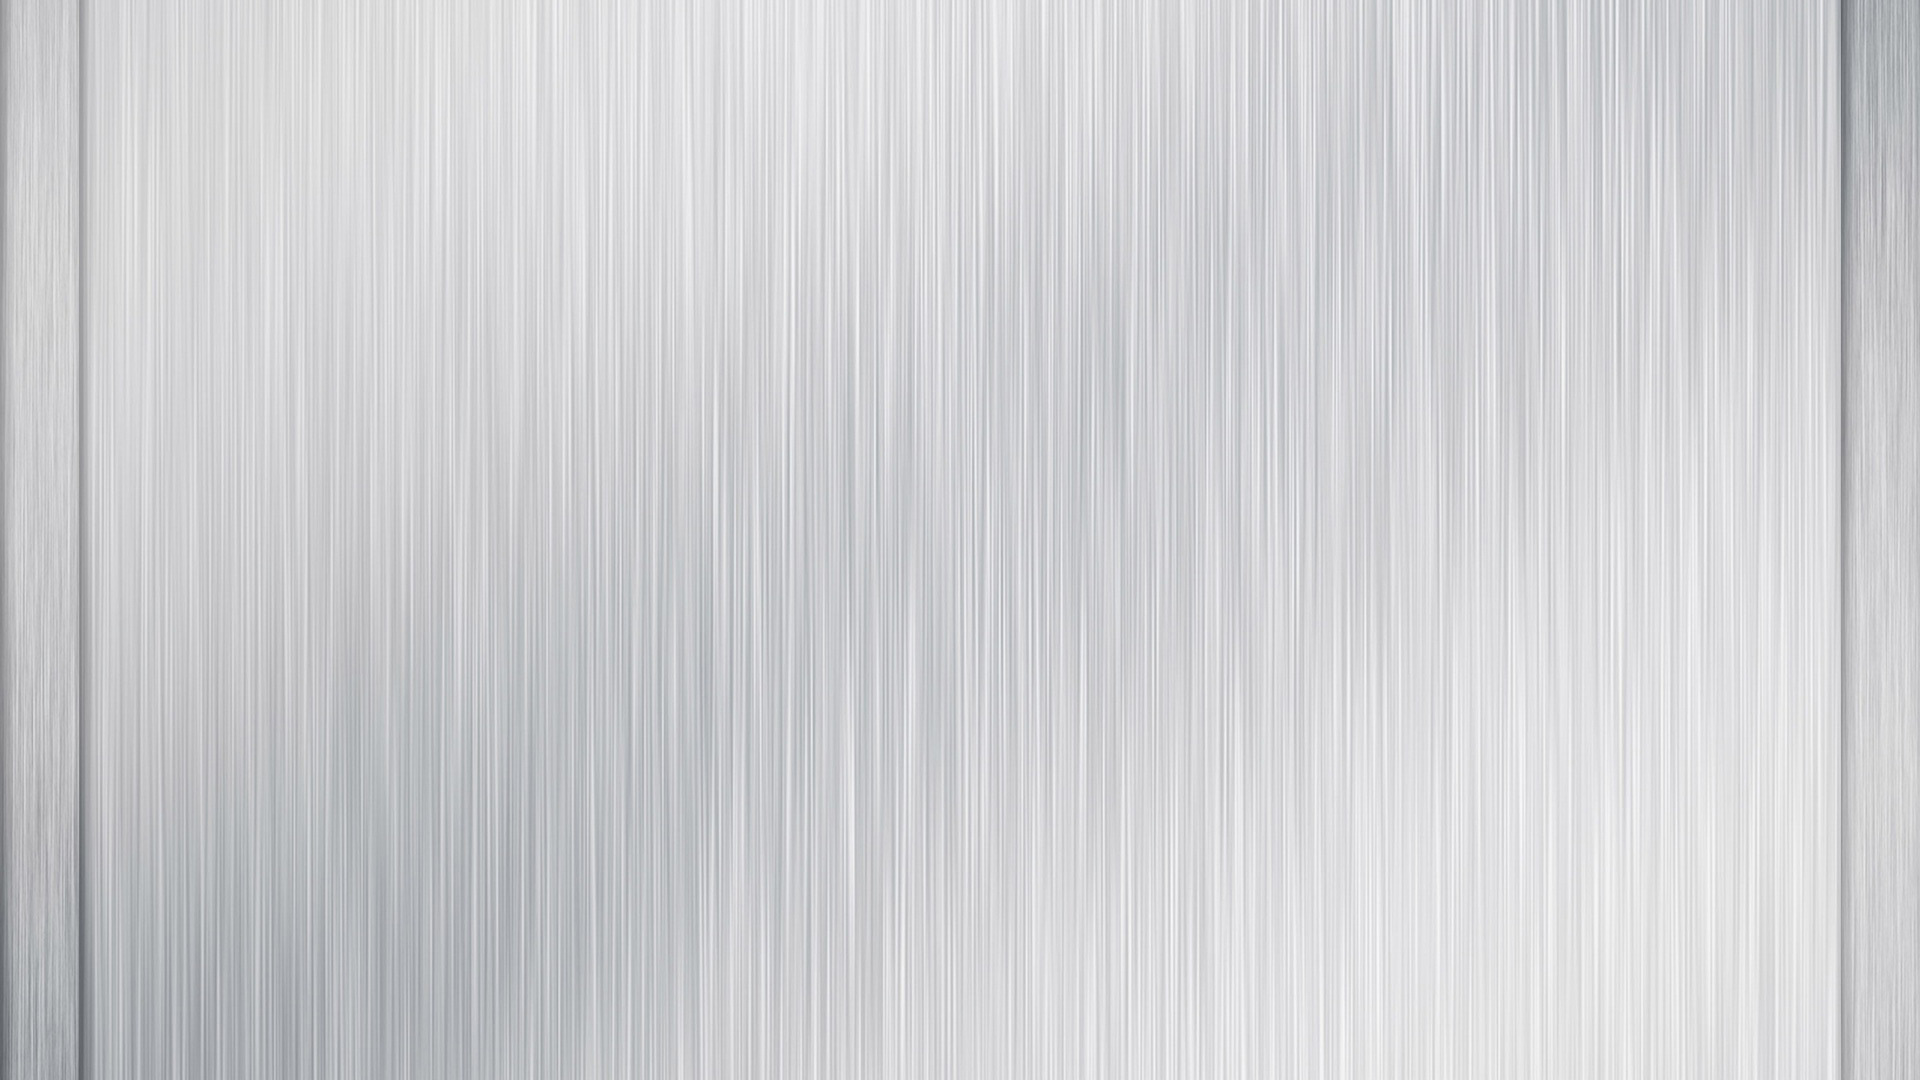 Brushed Aluminium Horizontal Texture Cool Android Wallpaper